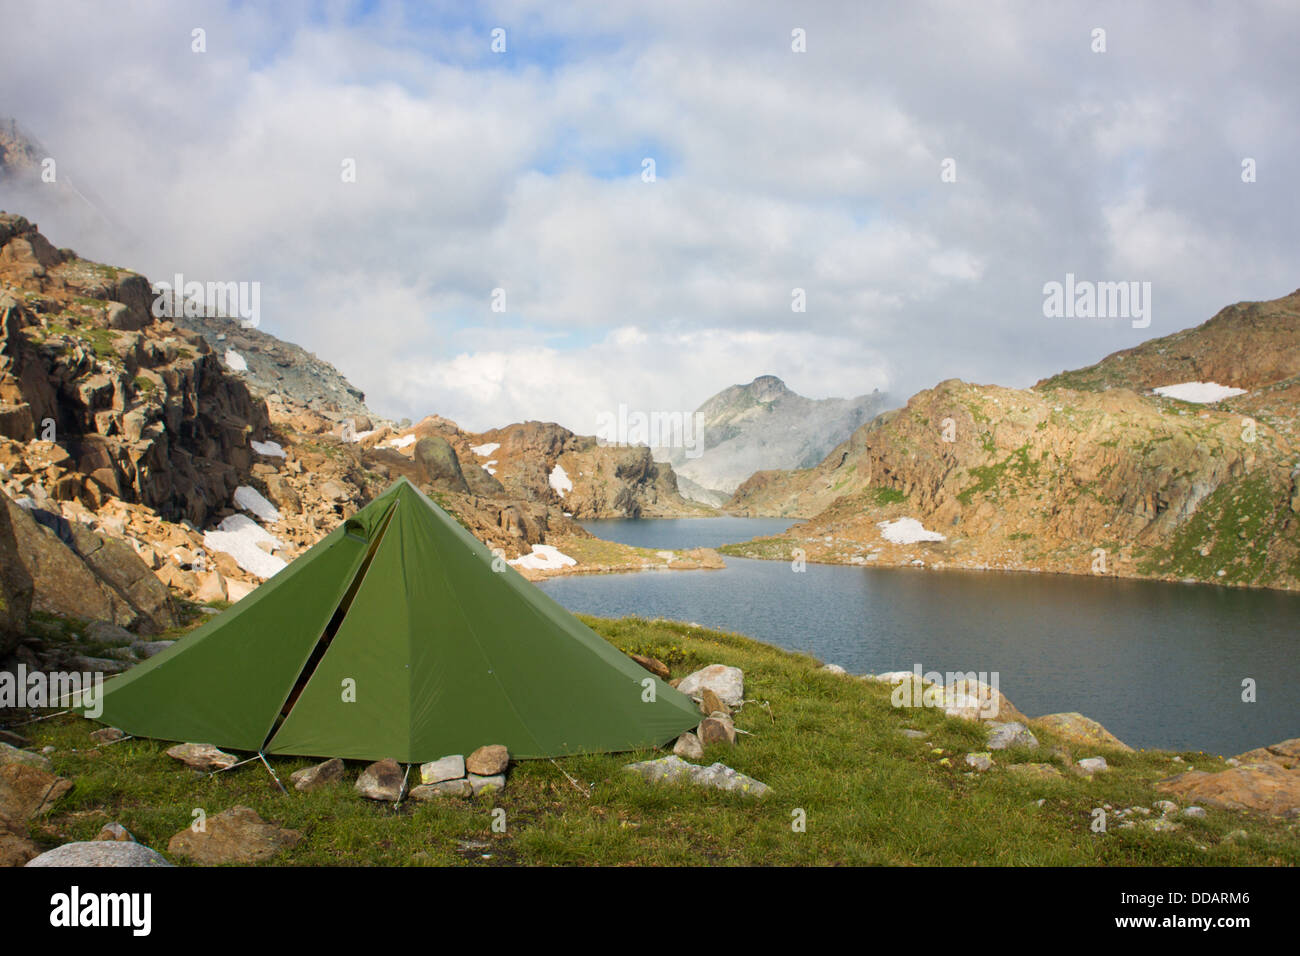 Hiking in the mountains; a green tent near a beautiful mountain lake - Stock Image